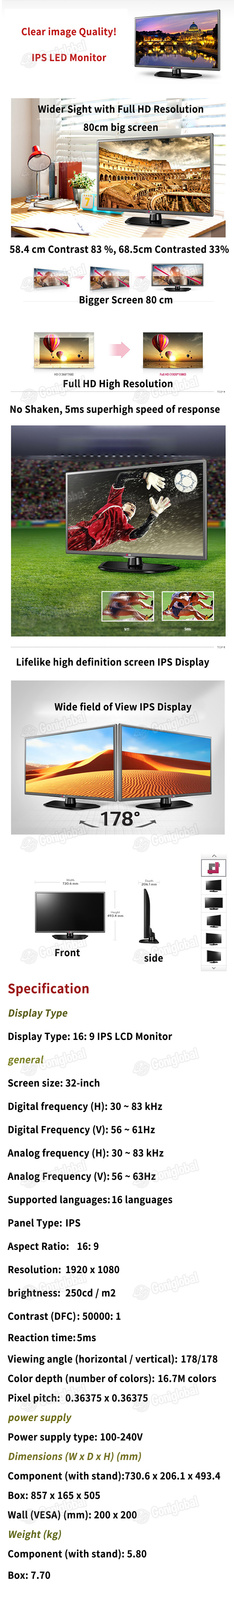 LG LG 32MB25VQ 32inchesIPS Monitor / Full HD Resolution / Wide View Angle AH-IPS